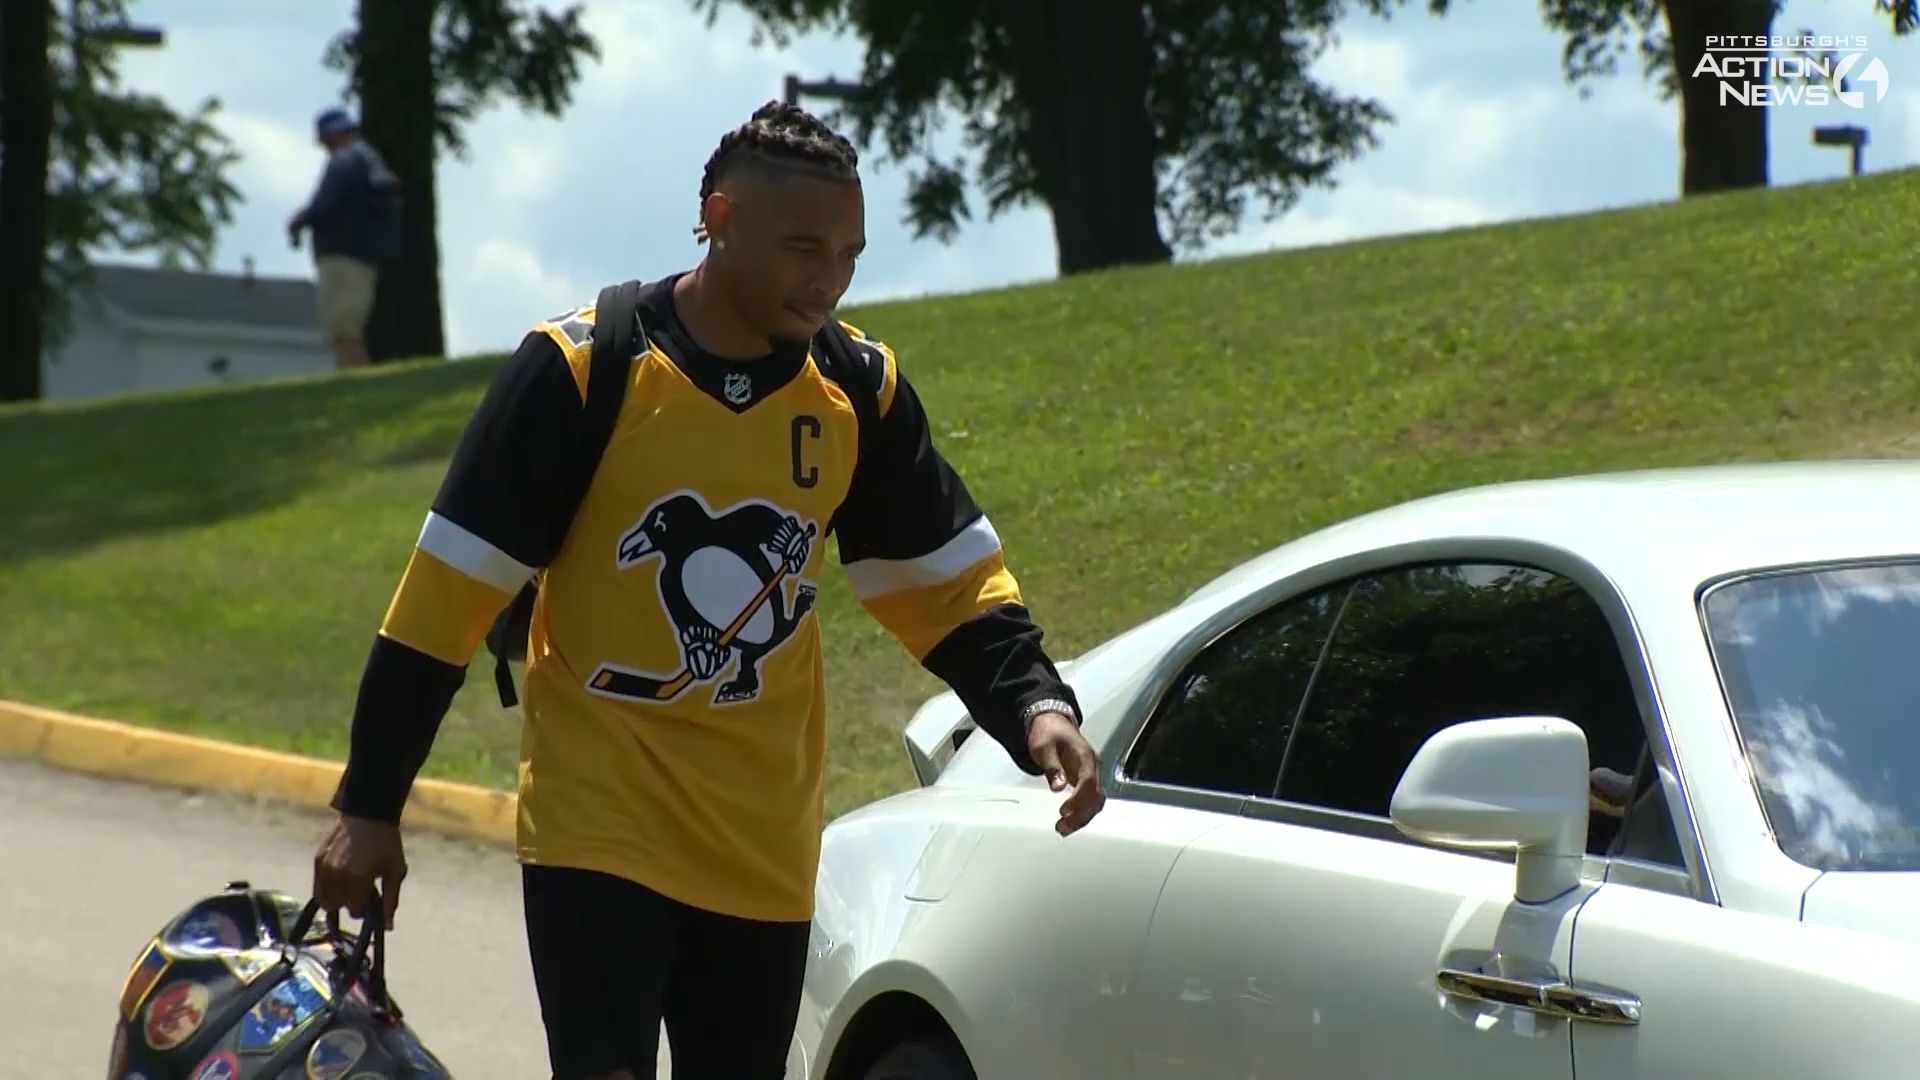 new concept 446fd 5c61d Steelers training camp: Joe Haden arrives in Rolls-Royce, Sidney Crosby  jersey, black and gold Jordans